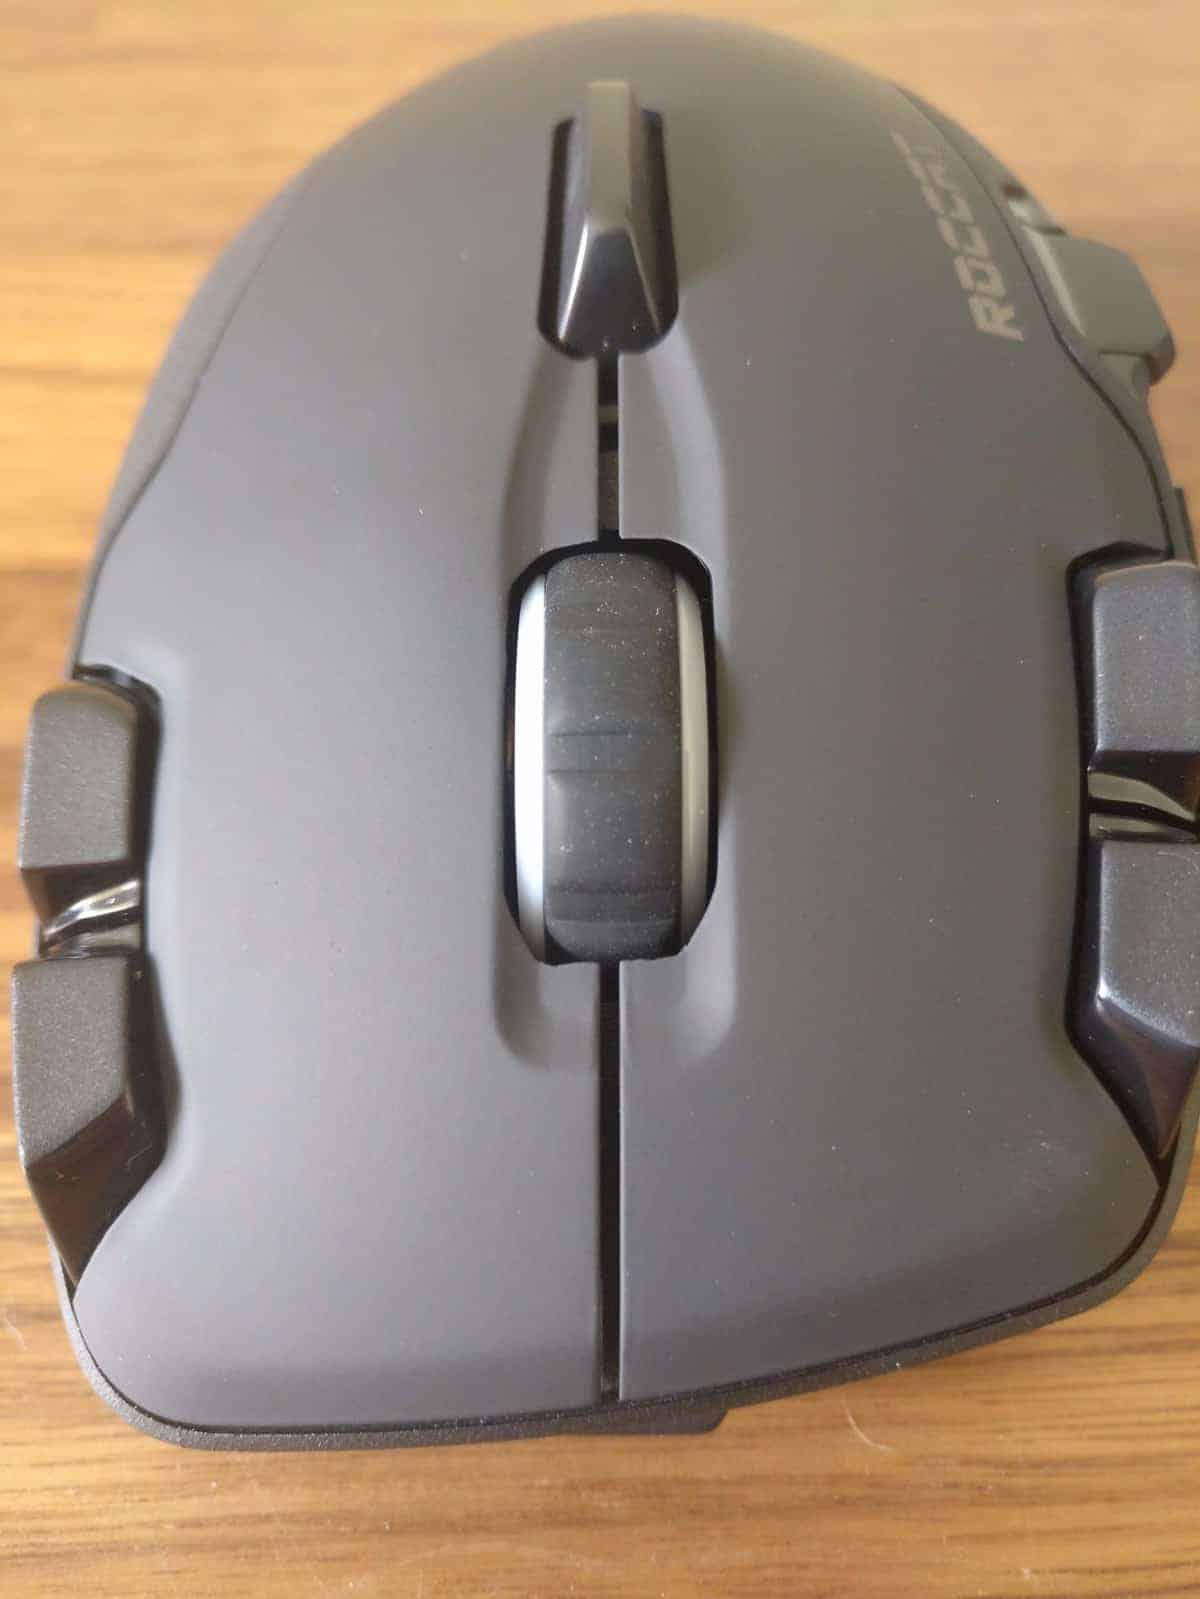 Roccat-Leadr-Photos23 Roccat Leadr Wireless Gaming Mouse Review